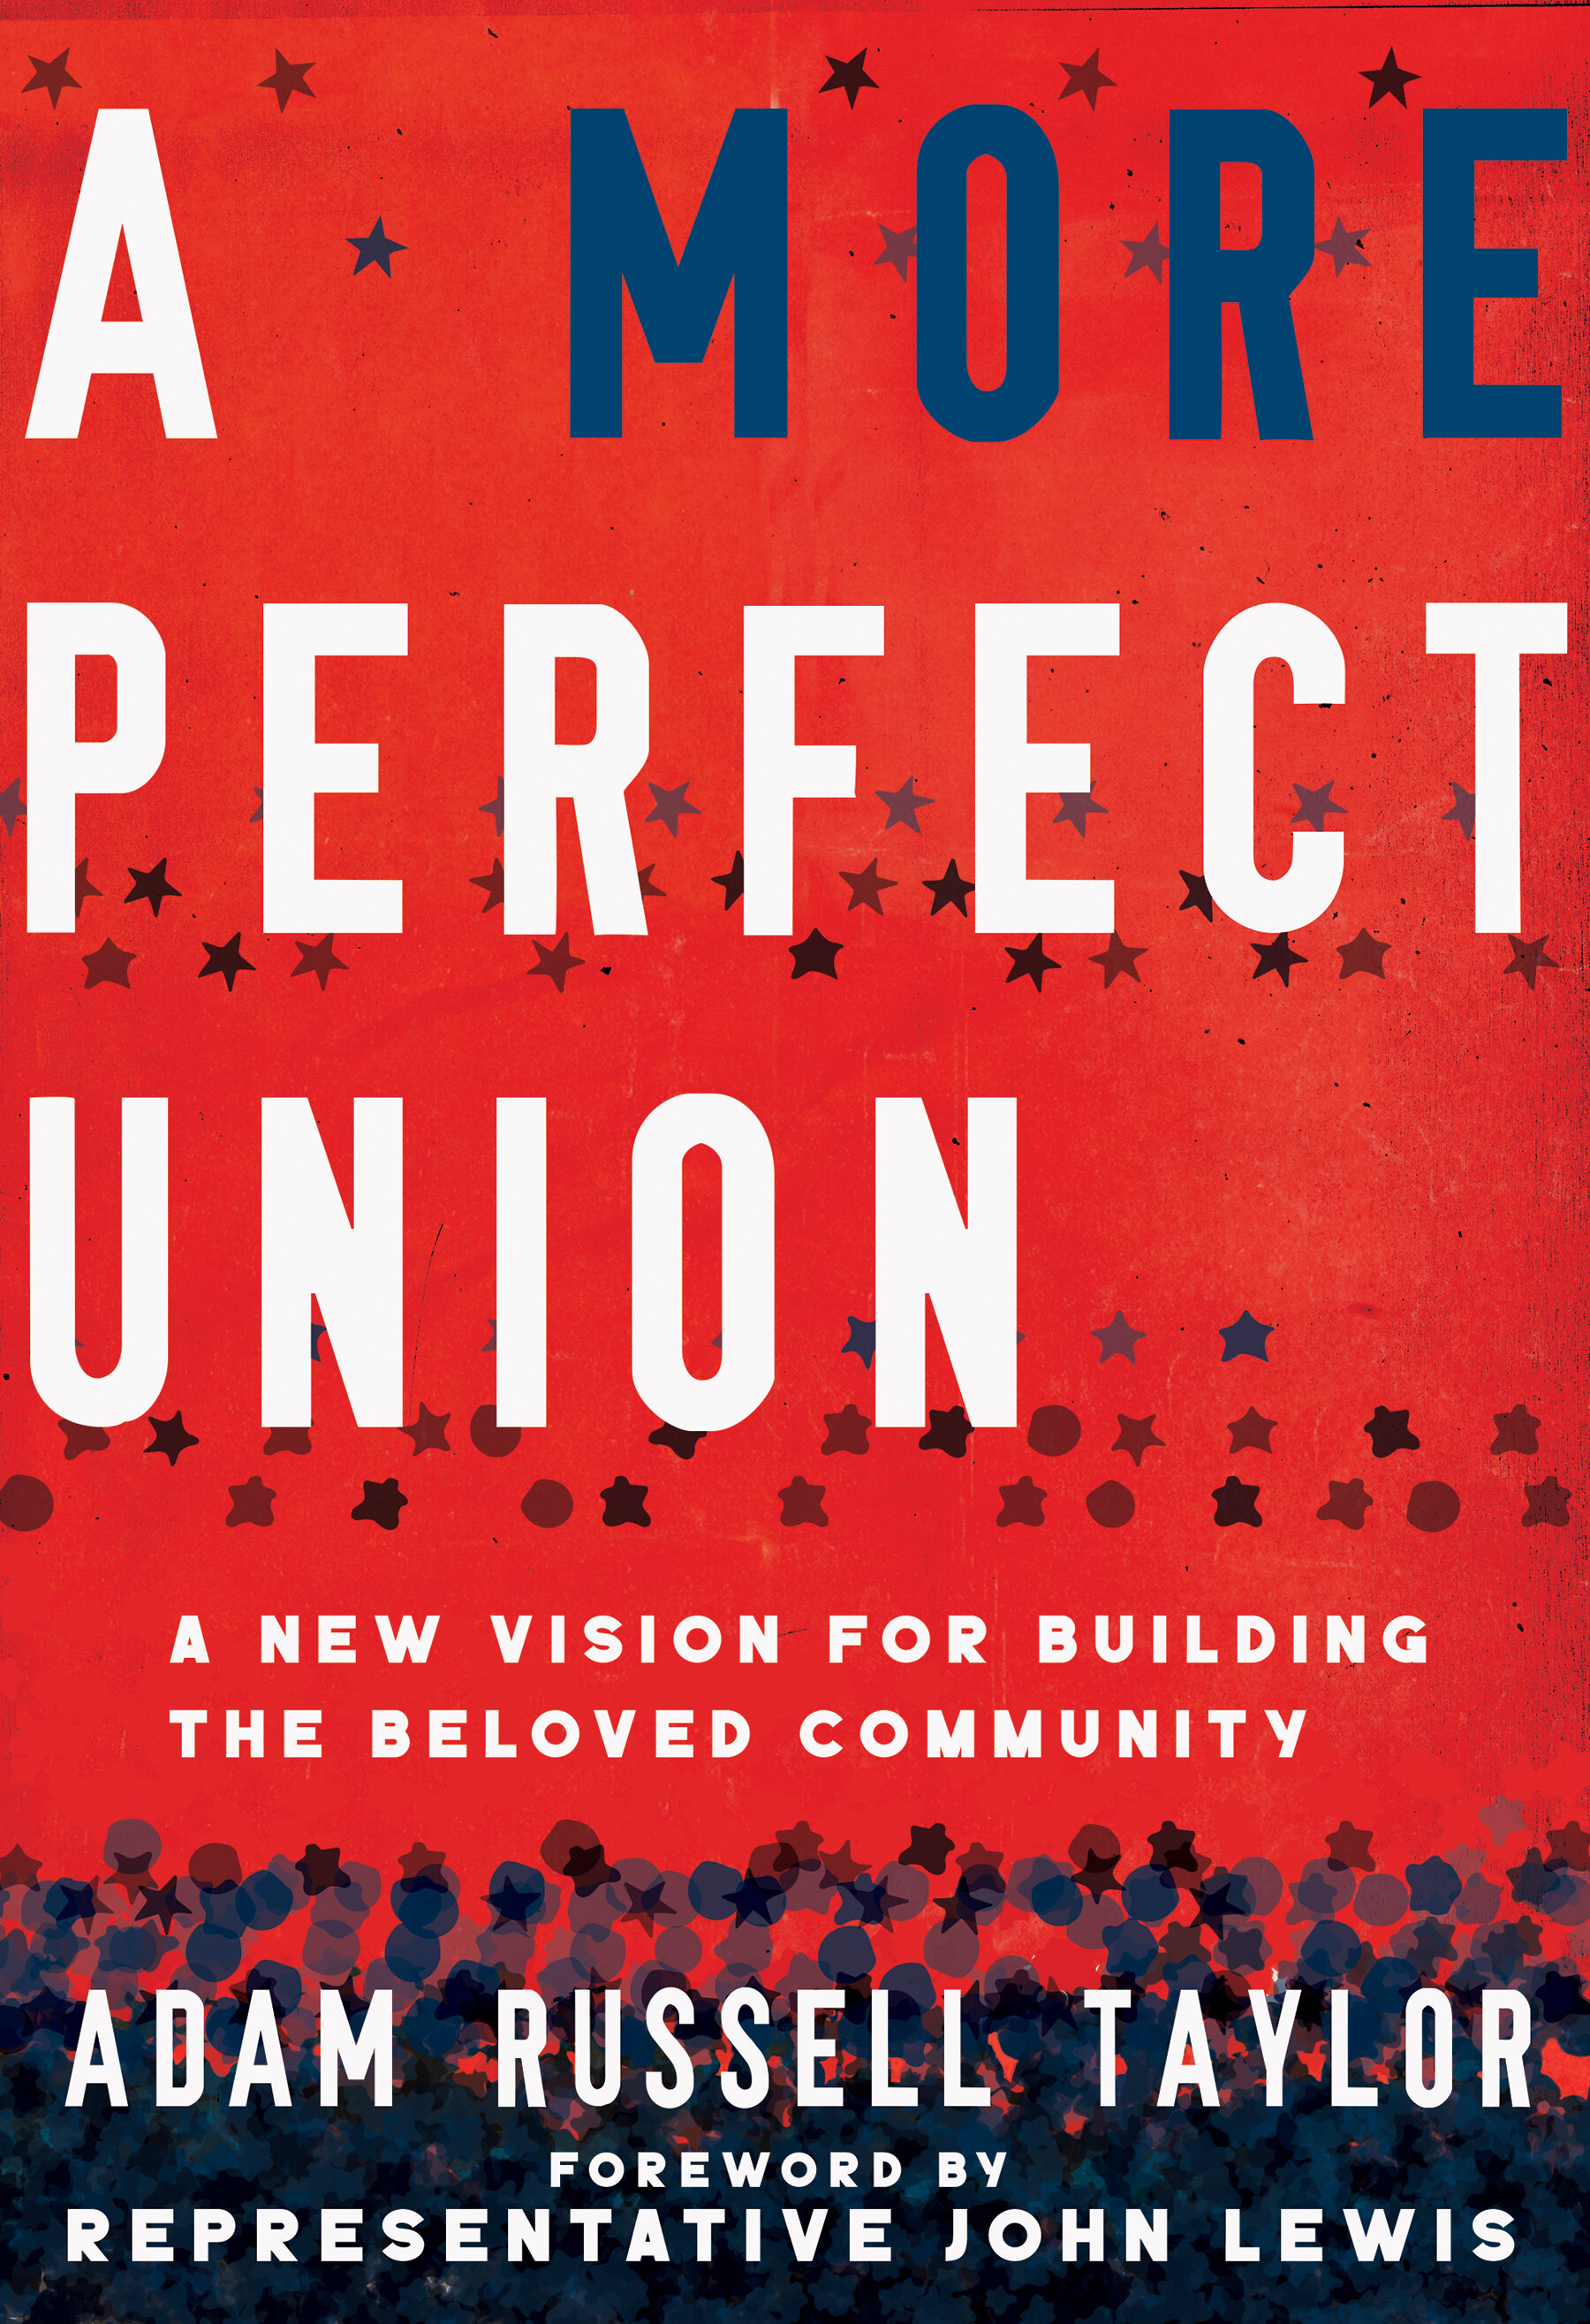 A More Perfect Union: A New Vision for Building theBelovedCommunity